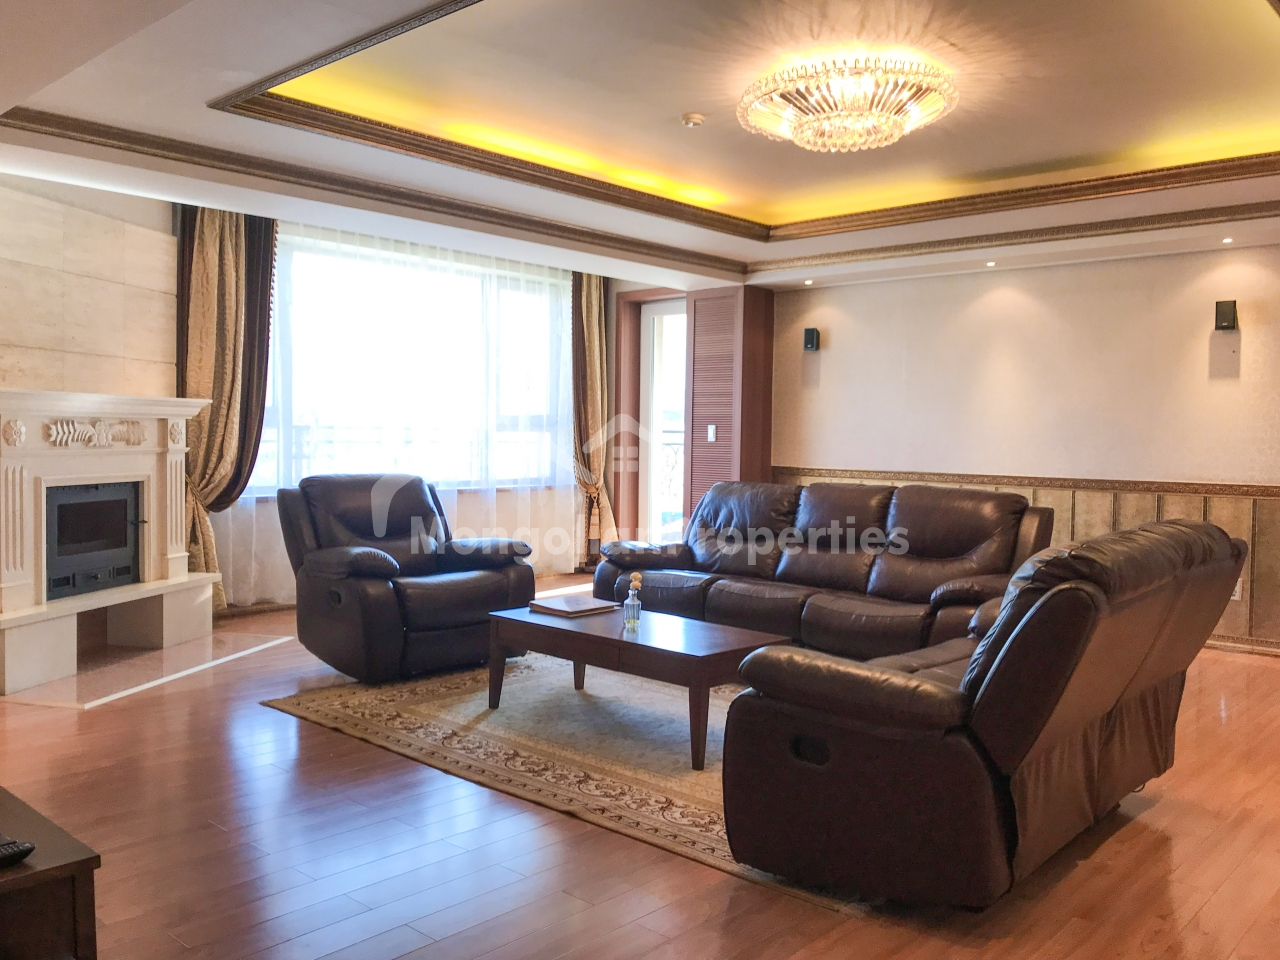 Beautiful 3 bedrooms apartment is for rent in Seoul Royal County